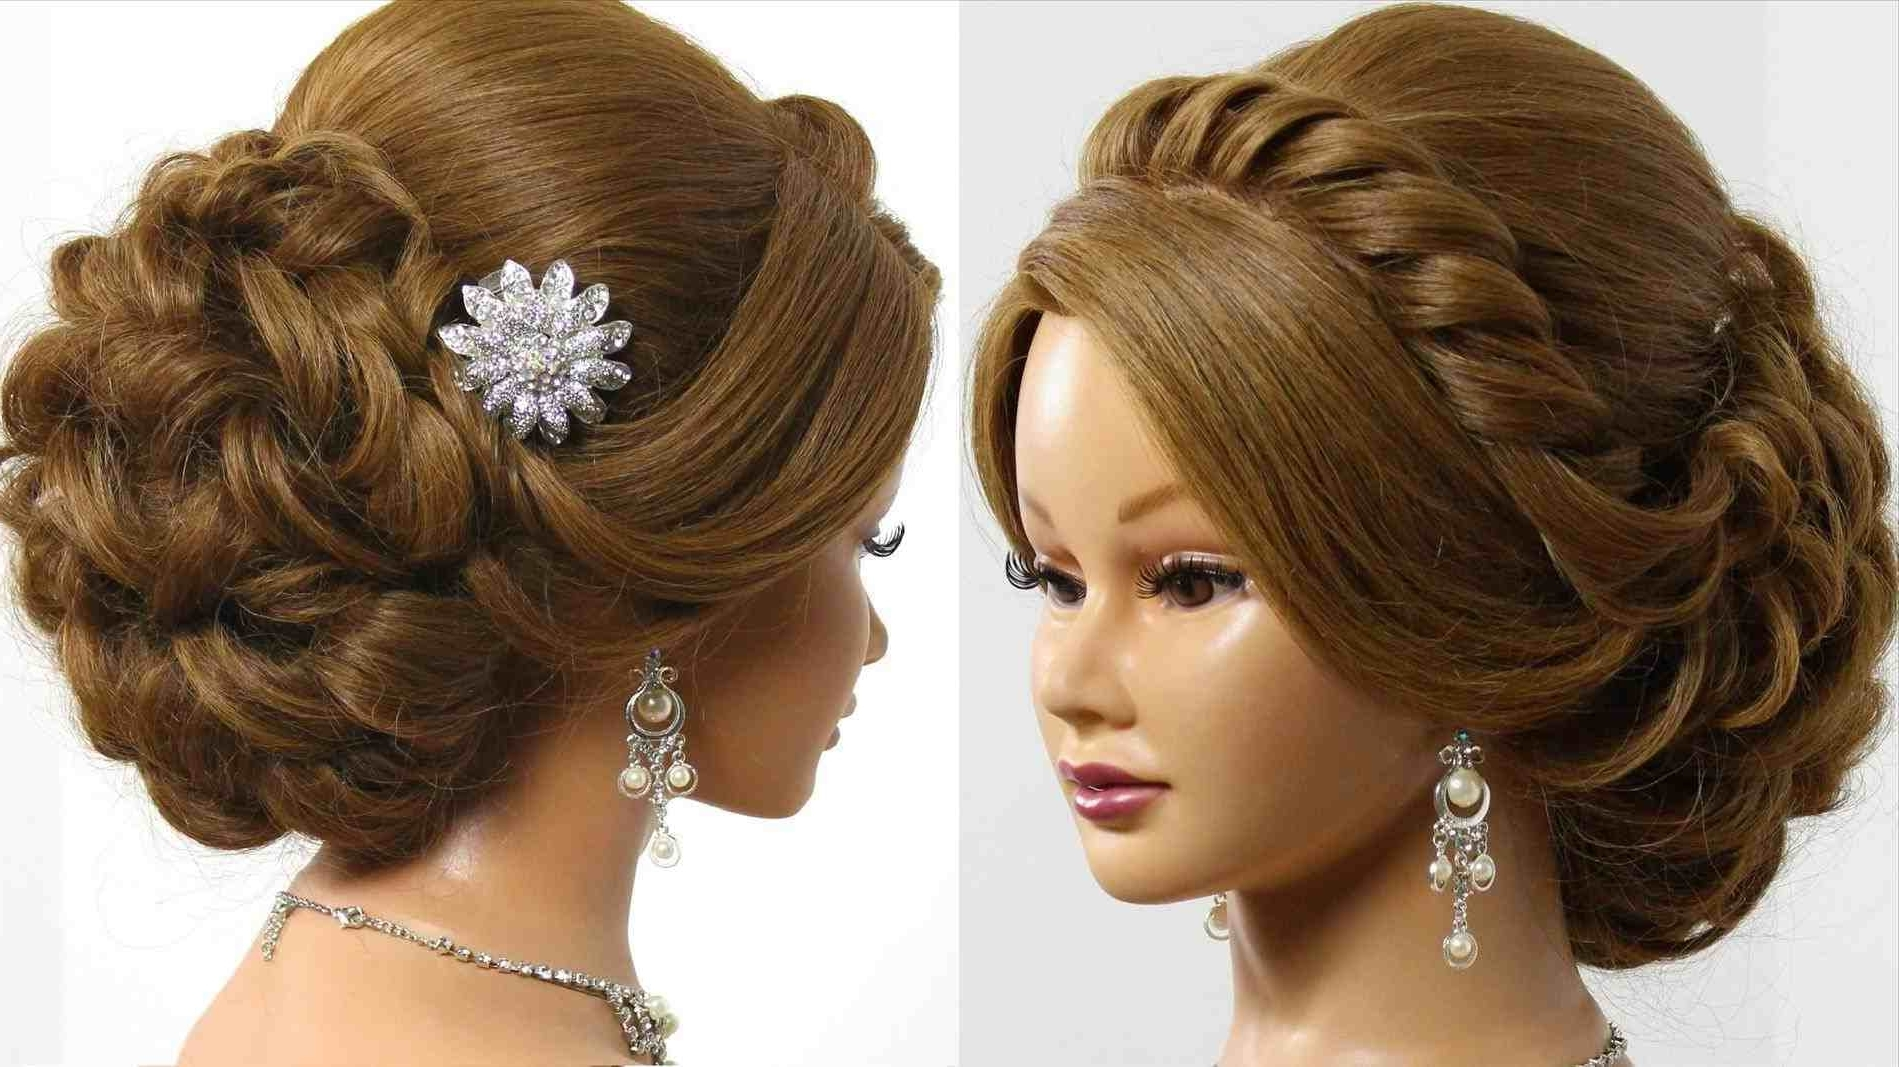 Widely Used Wedding Hairstyles For Older Ladies With Long Hair Pertaining To Marvelous And Updos The Hairstyles Very Short Hair For Of Wedding (View 2 of 15)